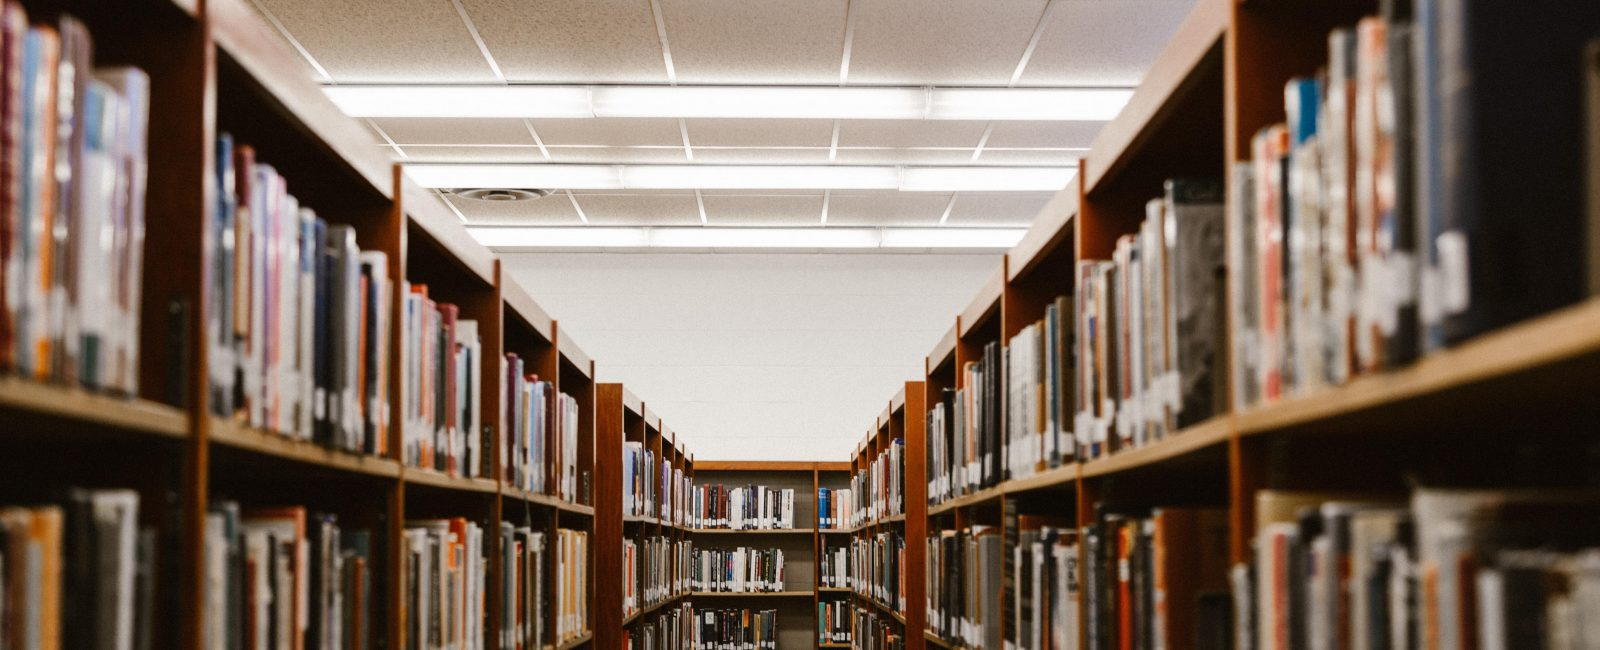 Why Should You Move to LED Lighting for Schools? Featured Image